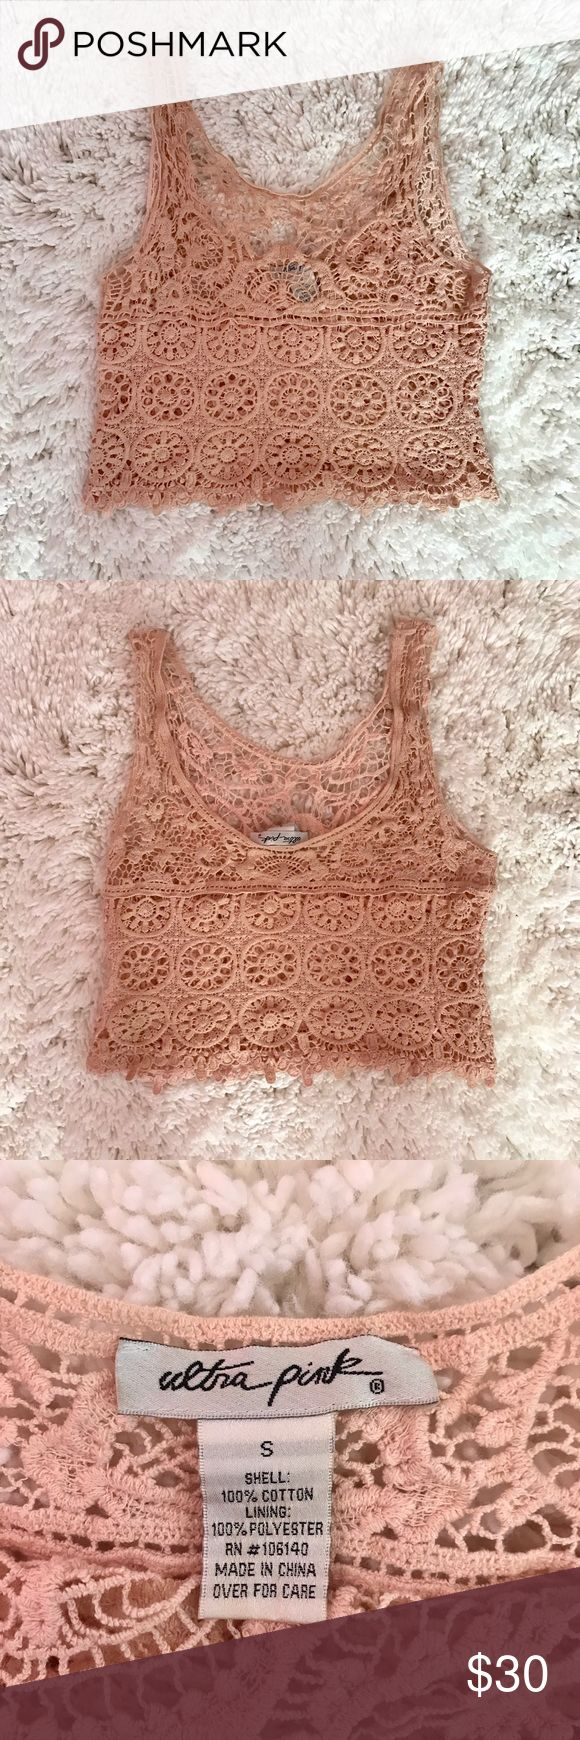 Blush Crochet Top  This all Crochet Crop Top is perfect for summer!  Wear it with a beige bandeau under or throw it over your bathing suit! Blush Light Pink Fits true to size Tops Crop Tops